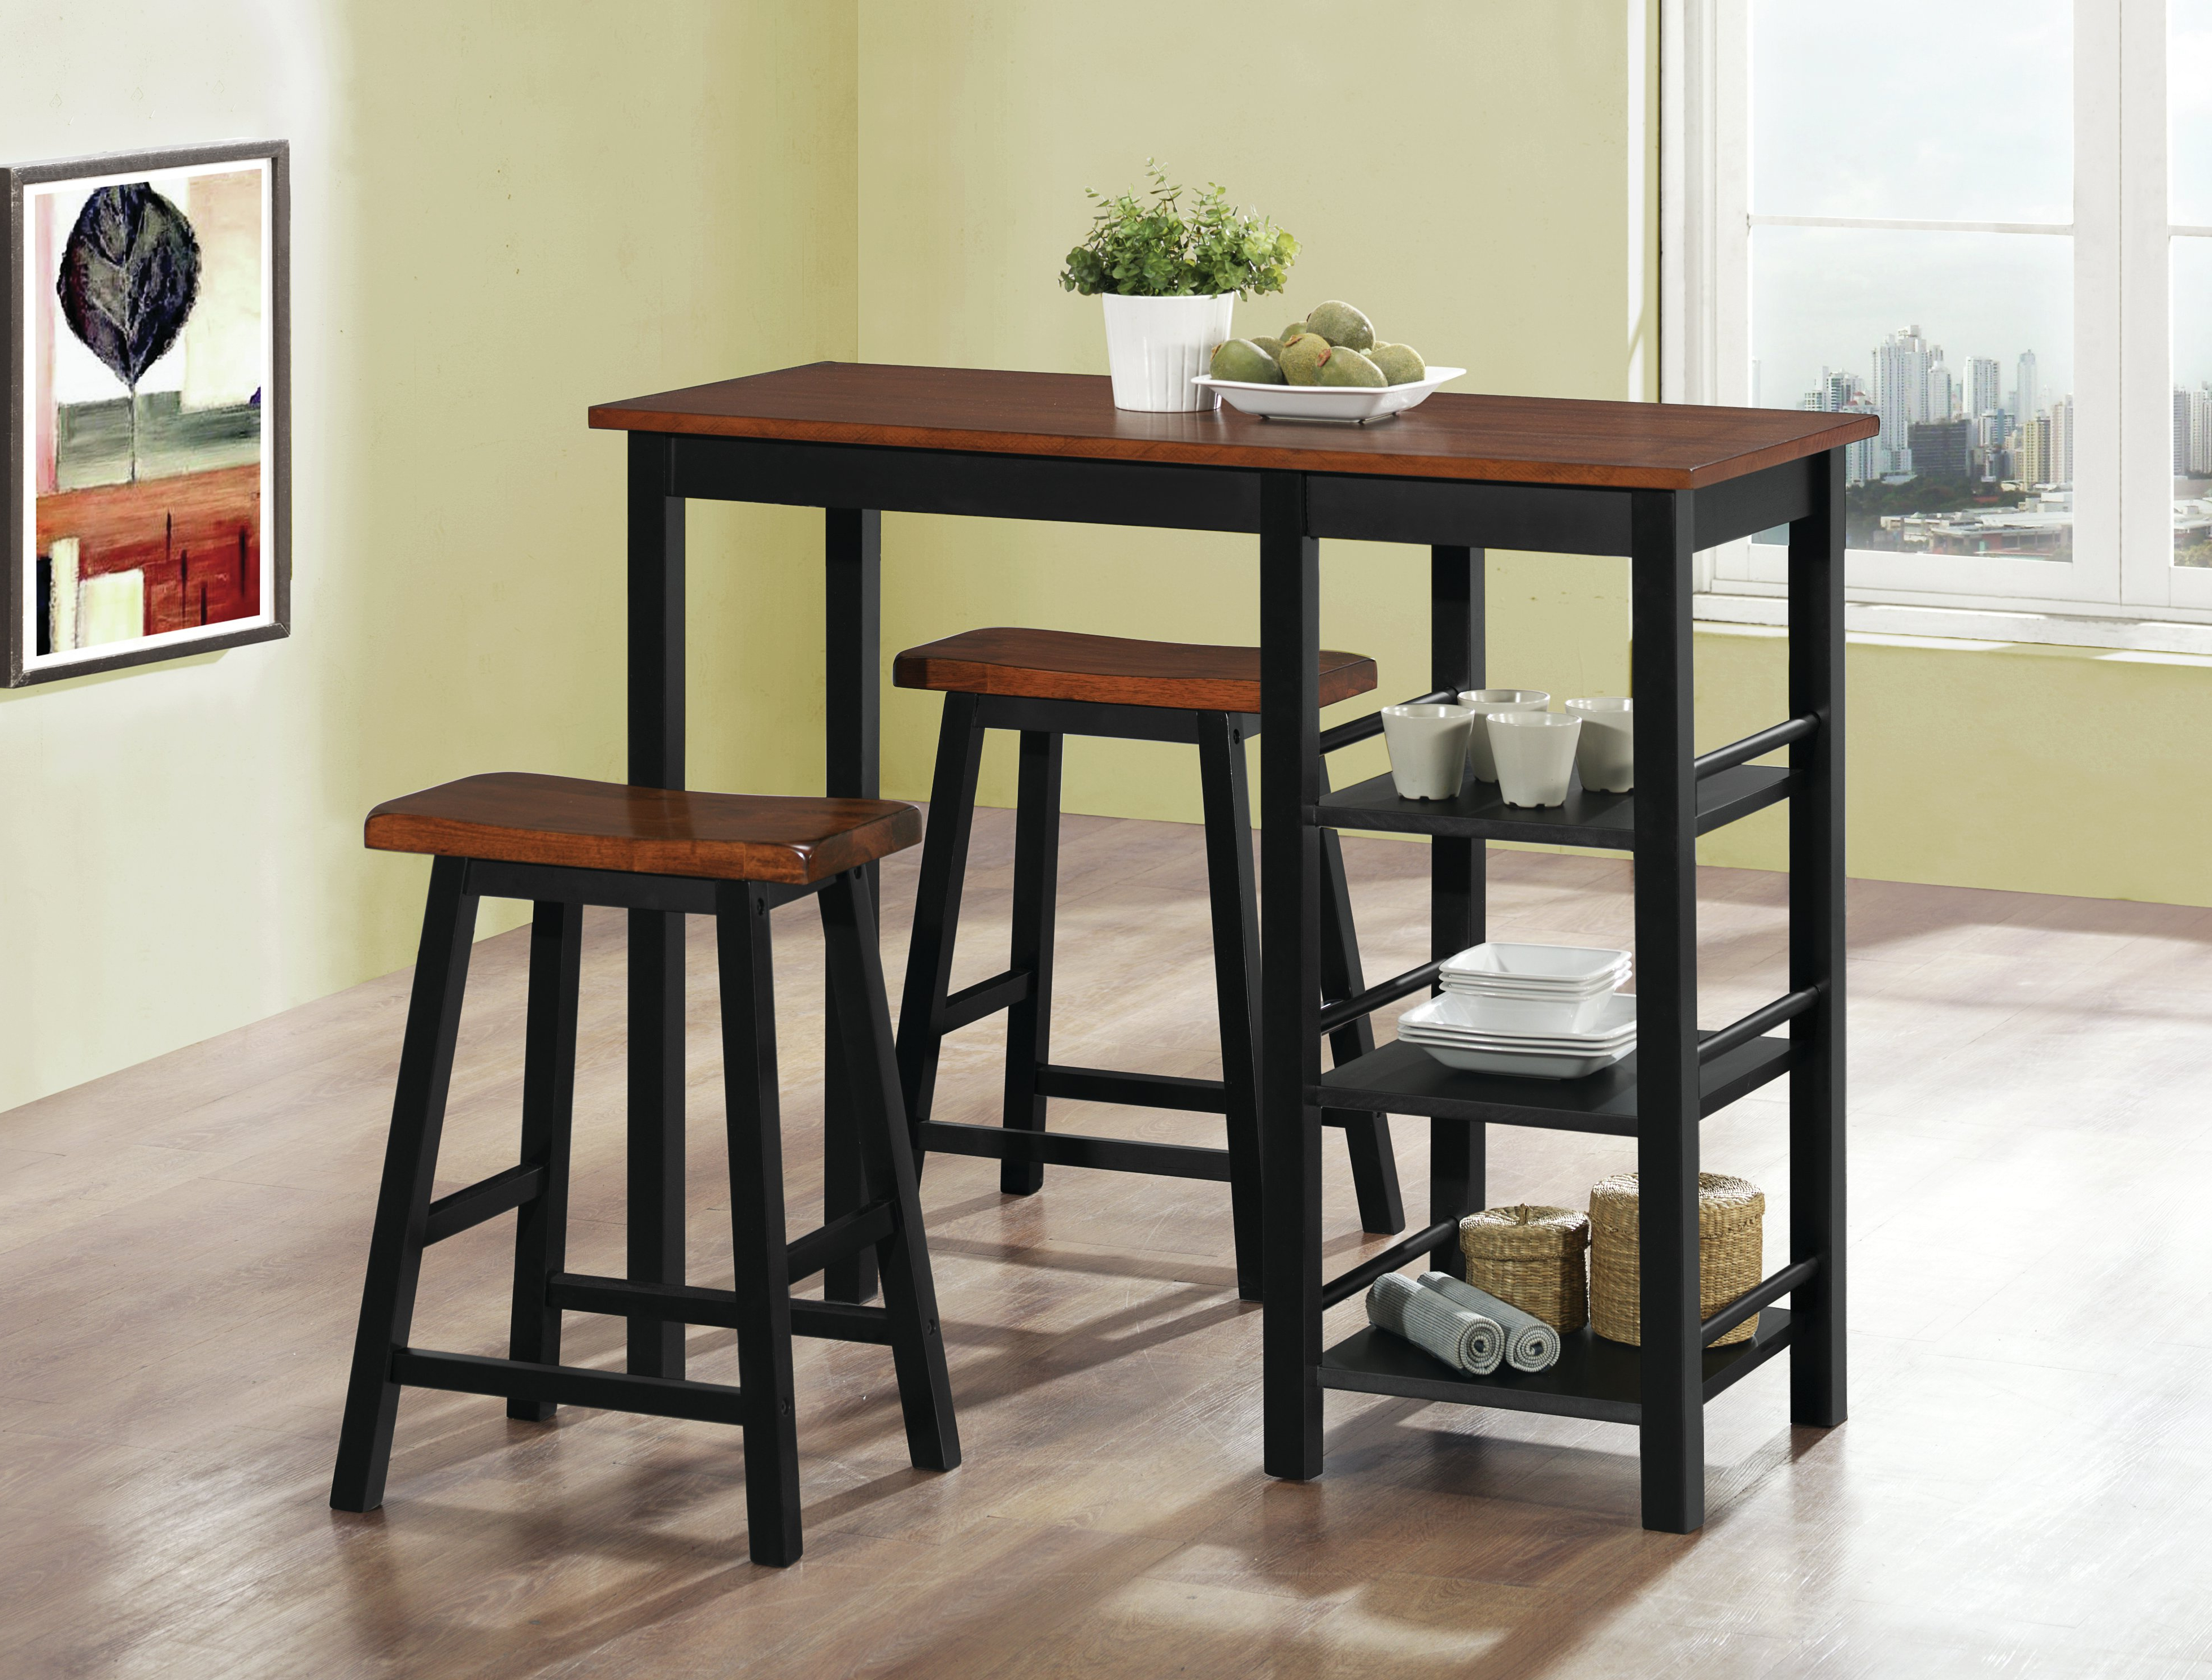 Berrios 3 Piece Counter Height Dining Set Regarding Most Recent Tenney 3 Piece Counter Height Dining Sets (View 8 of 20)